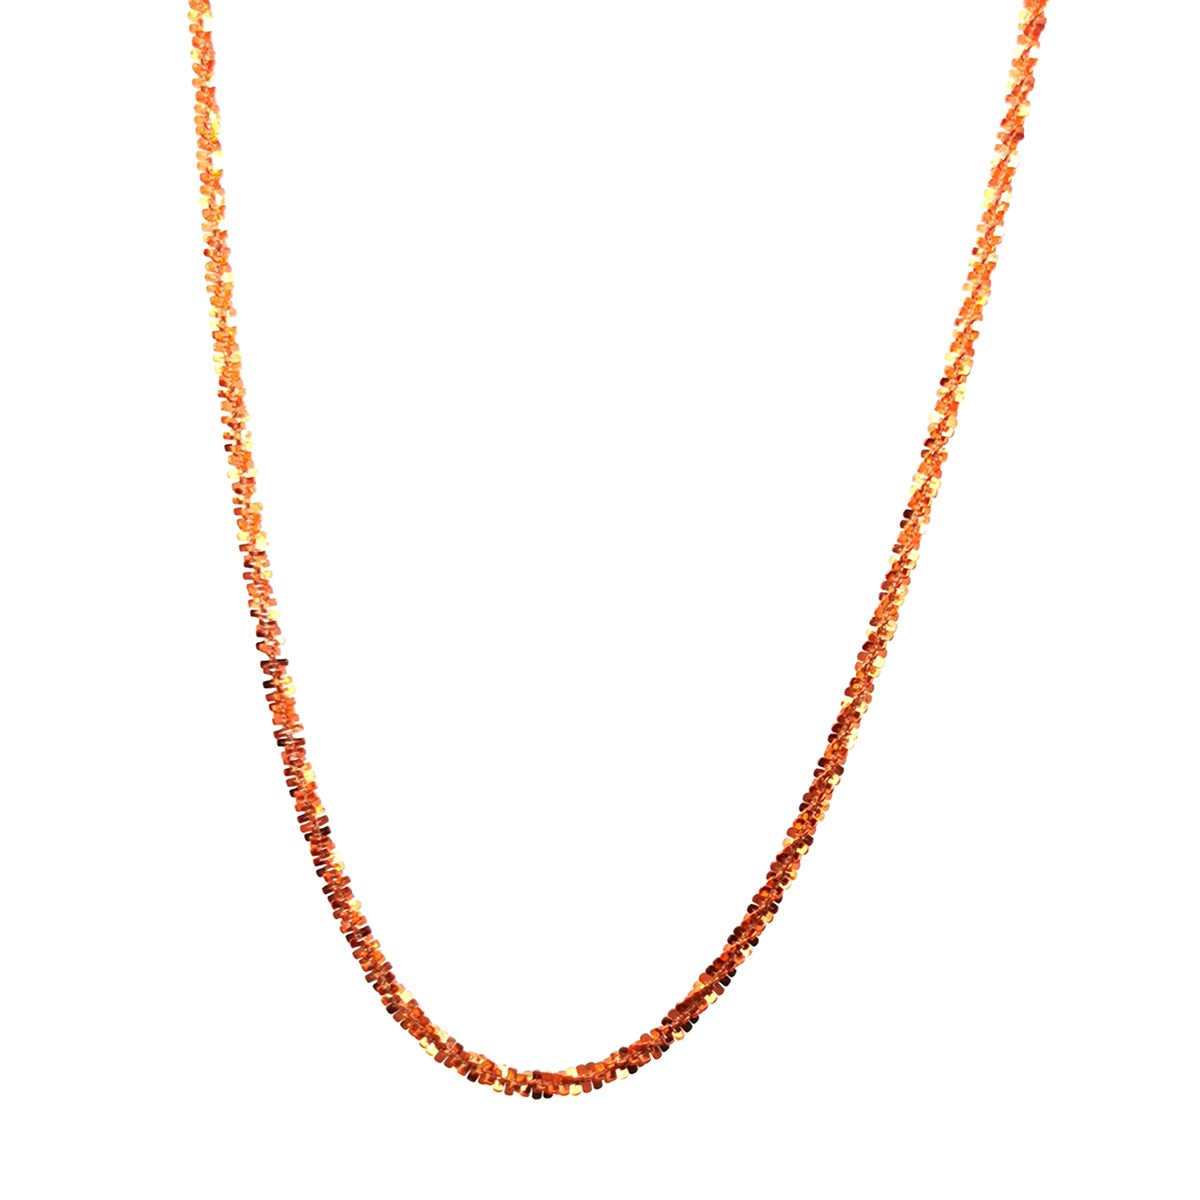 Collier Elden argent 925/1000 1 rang orange collection Catch the Rainbow